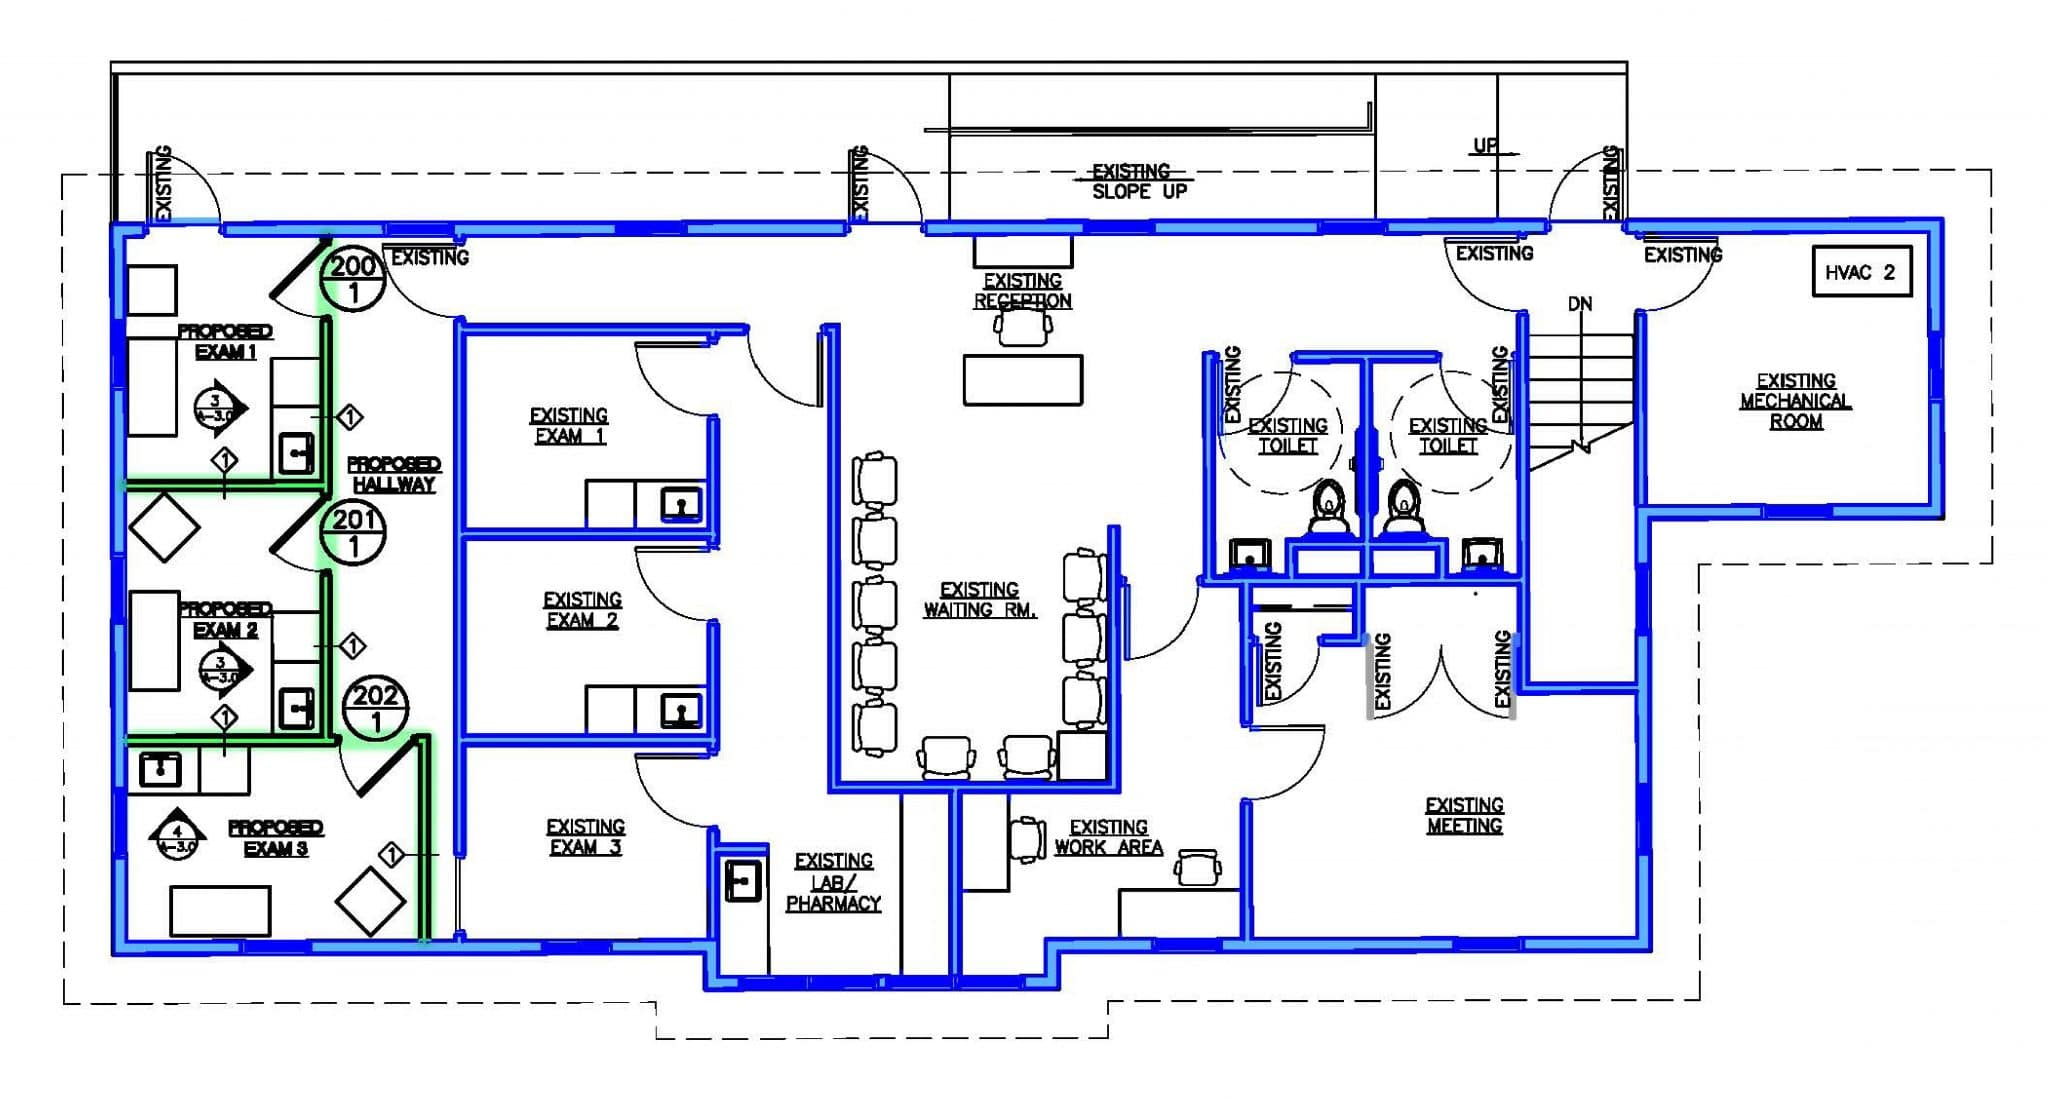 New floor plan with Phase 1 complete.